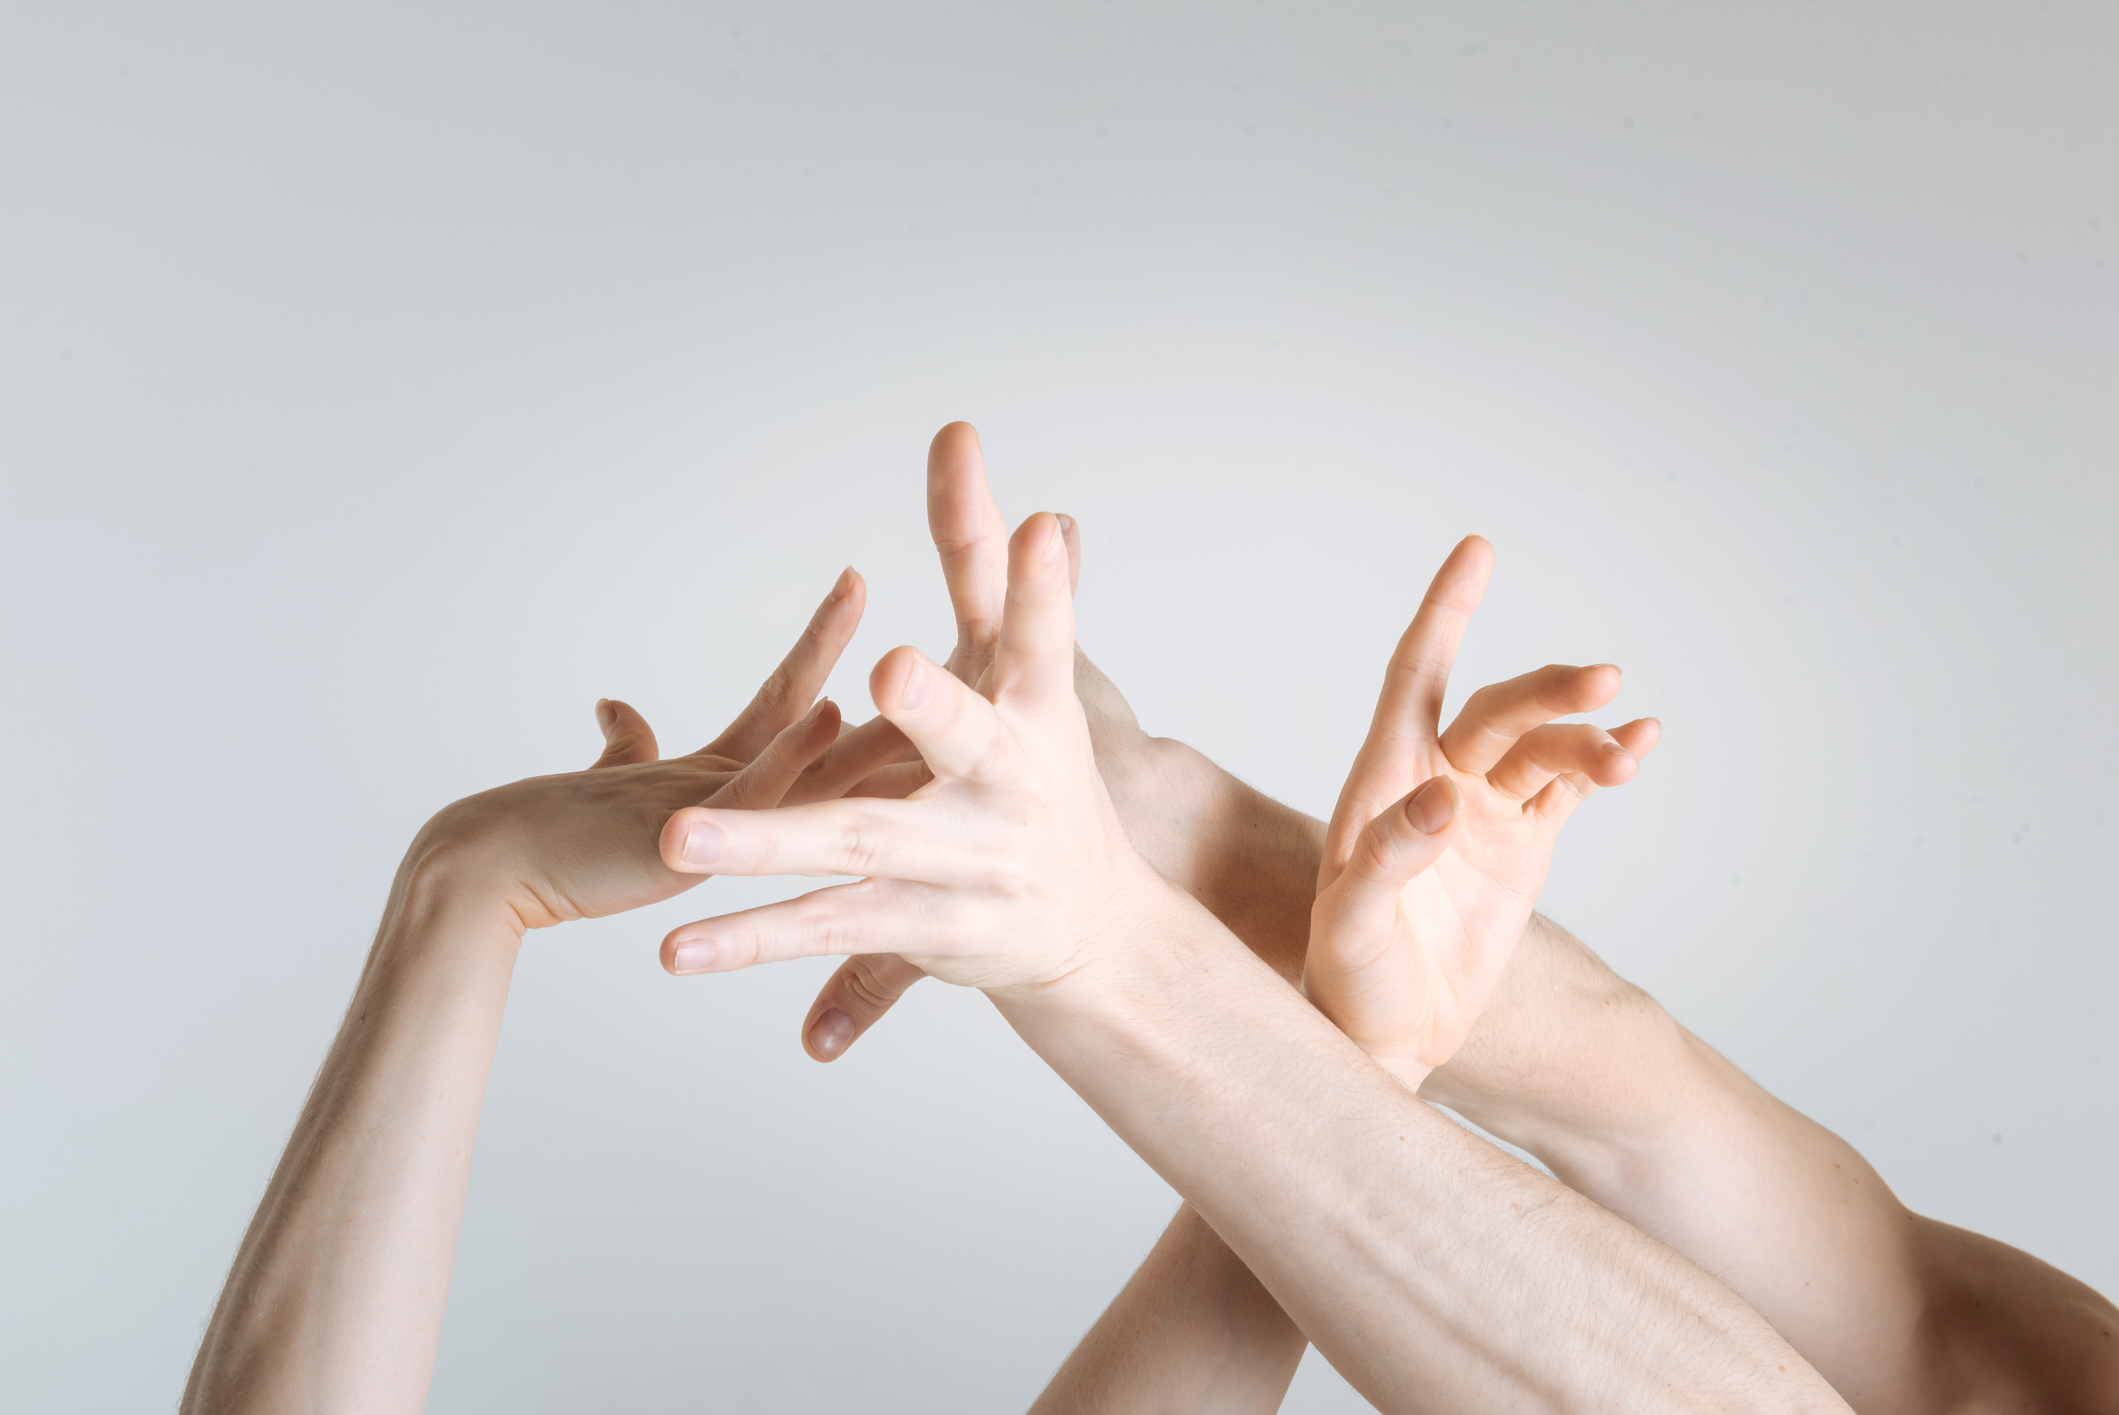 delicate-athletes-hands-demonstrating-interaction-in-the-studiojpg